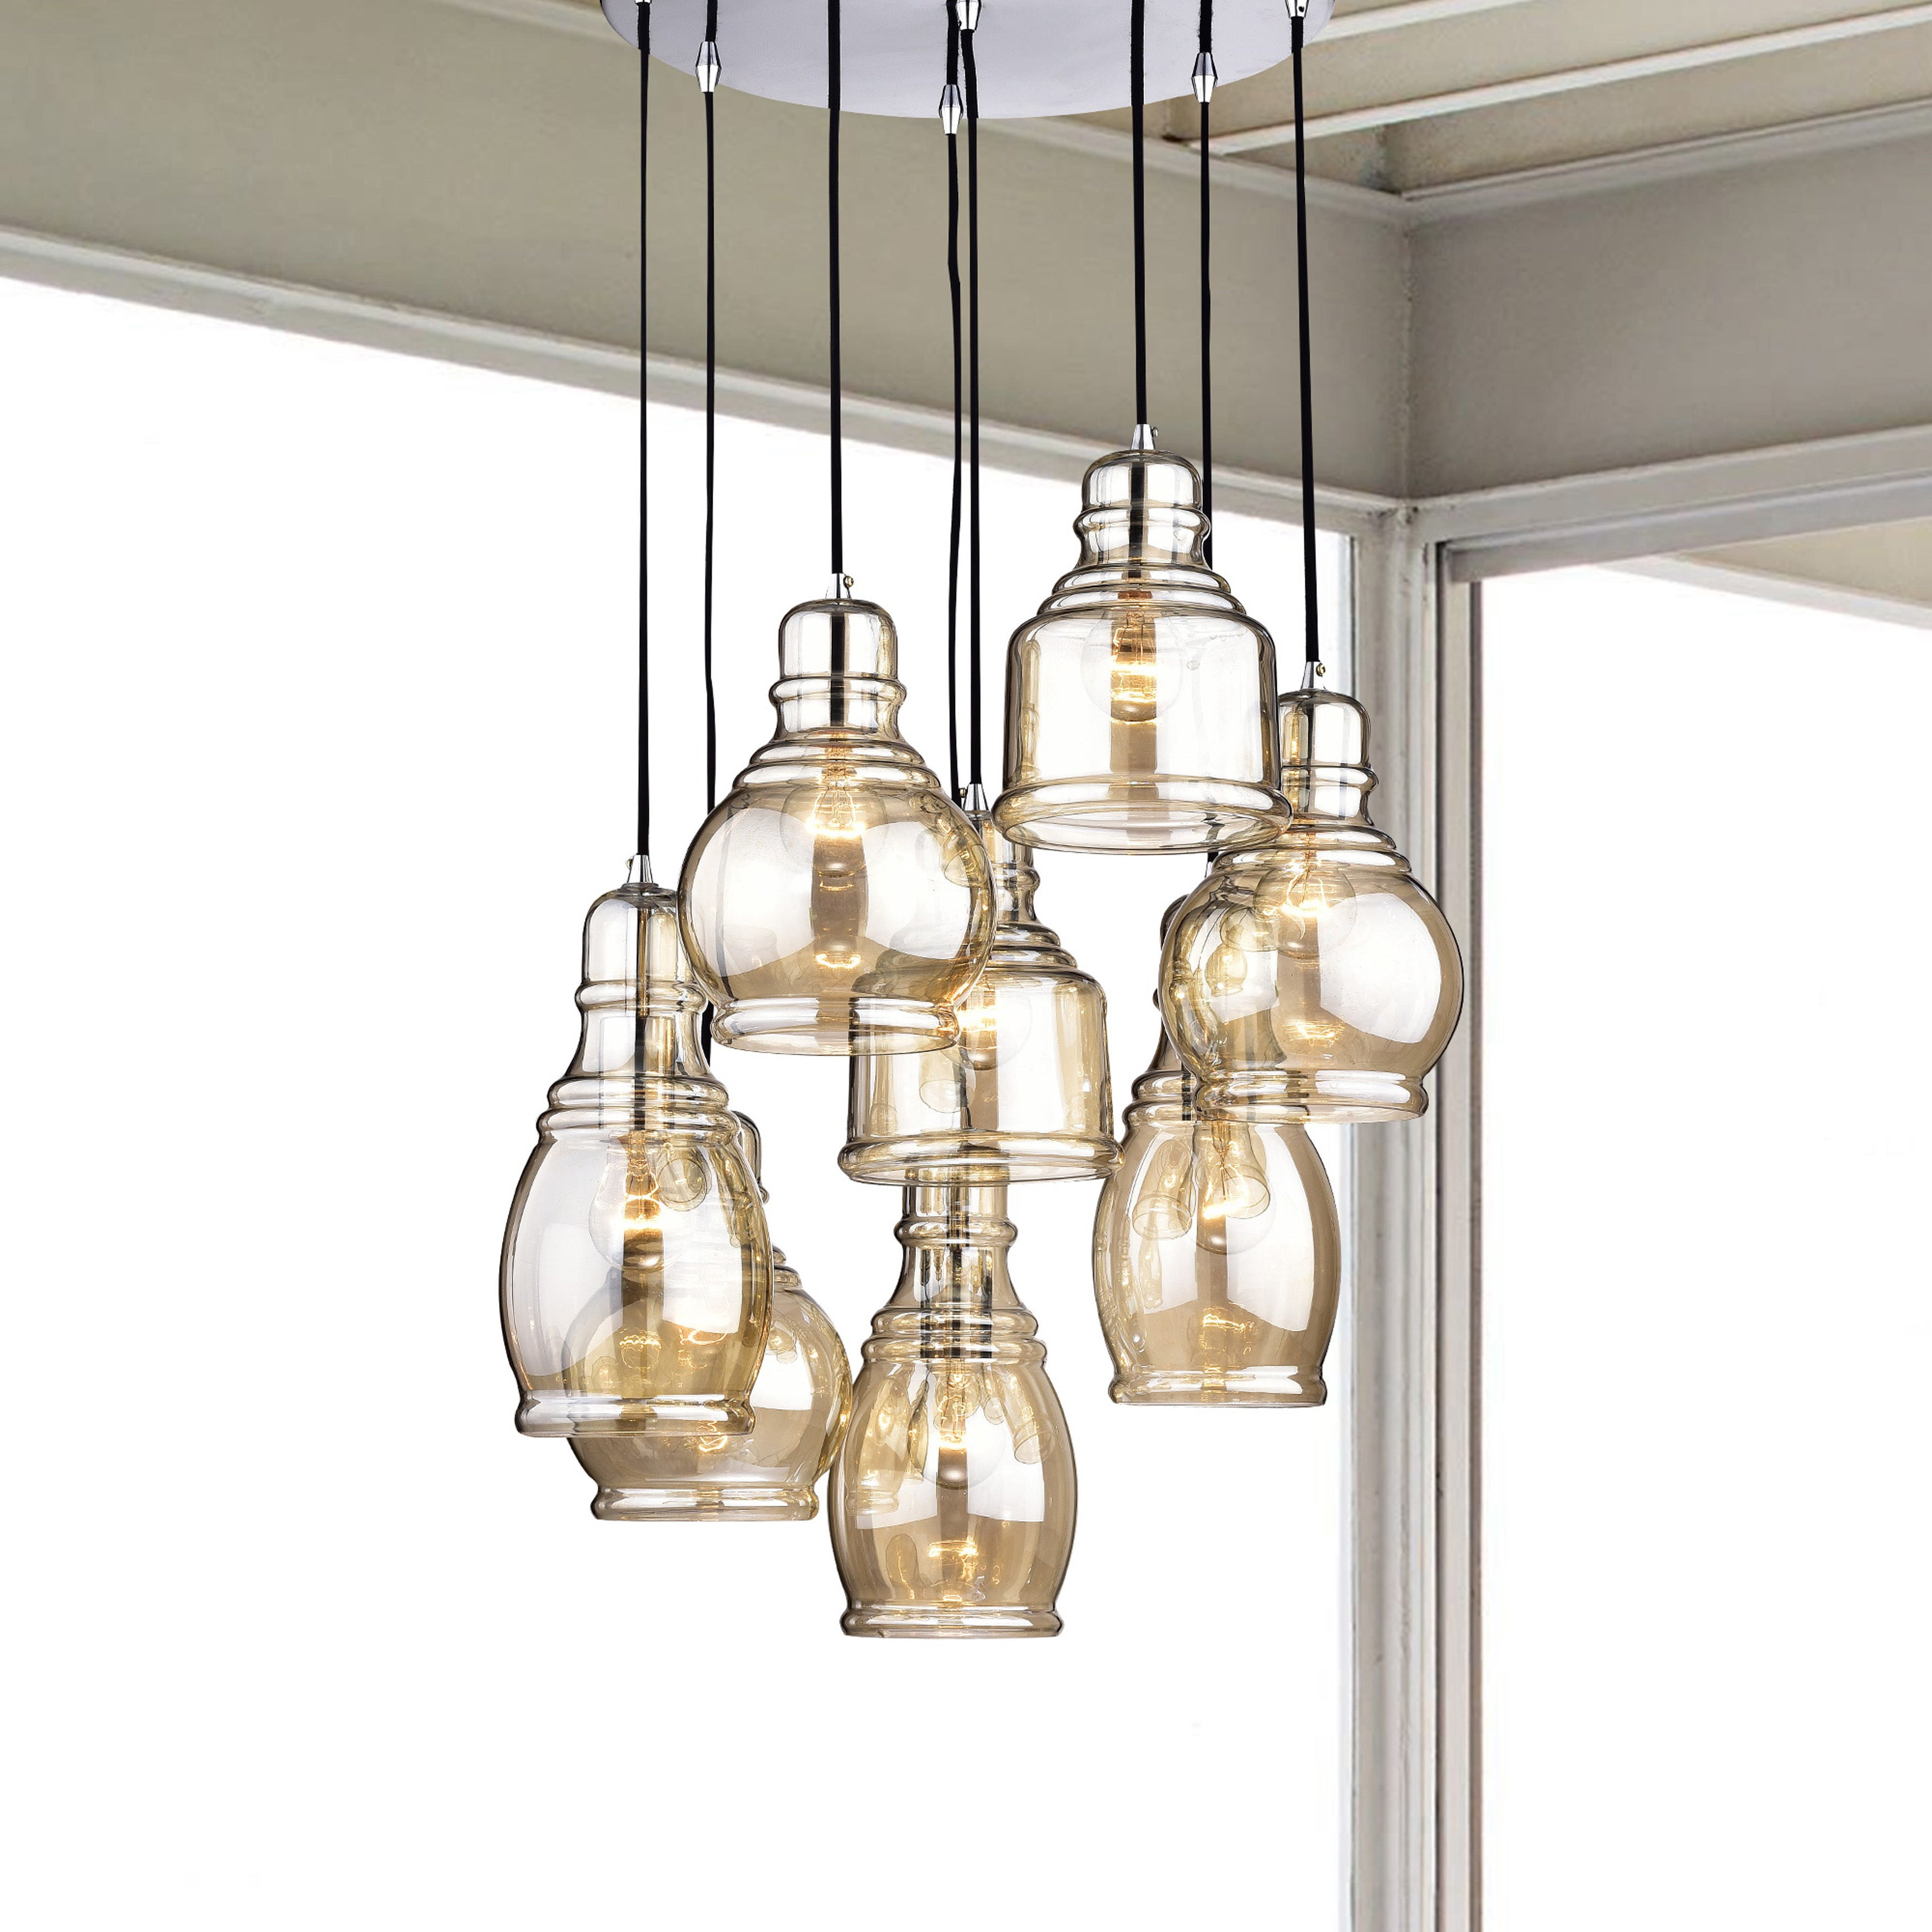 4d96cdbe8e30 New Mariana 8-light Cognac Glass Cluster Pendant Chandelier With FU02